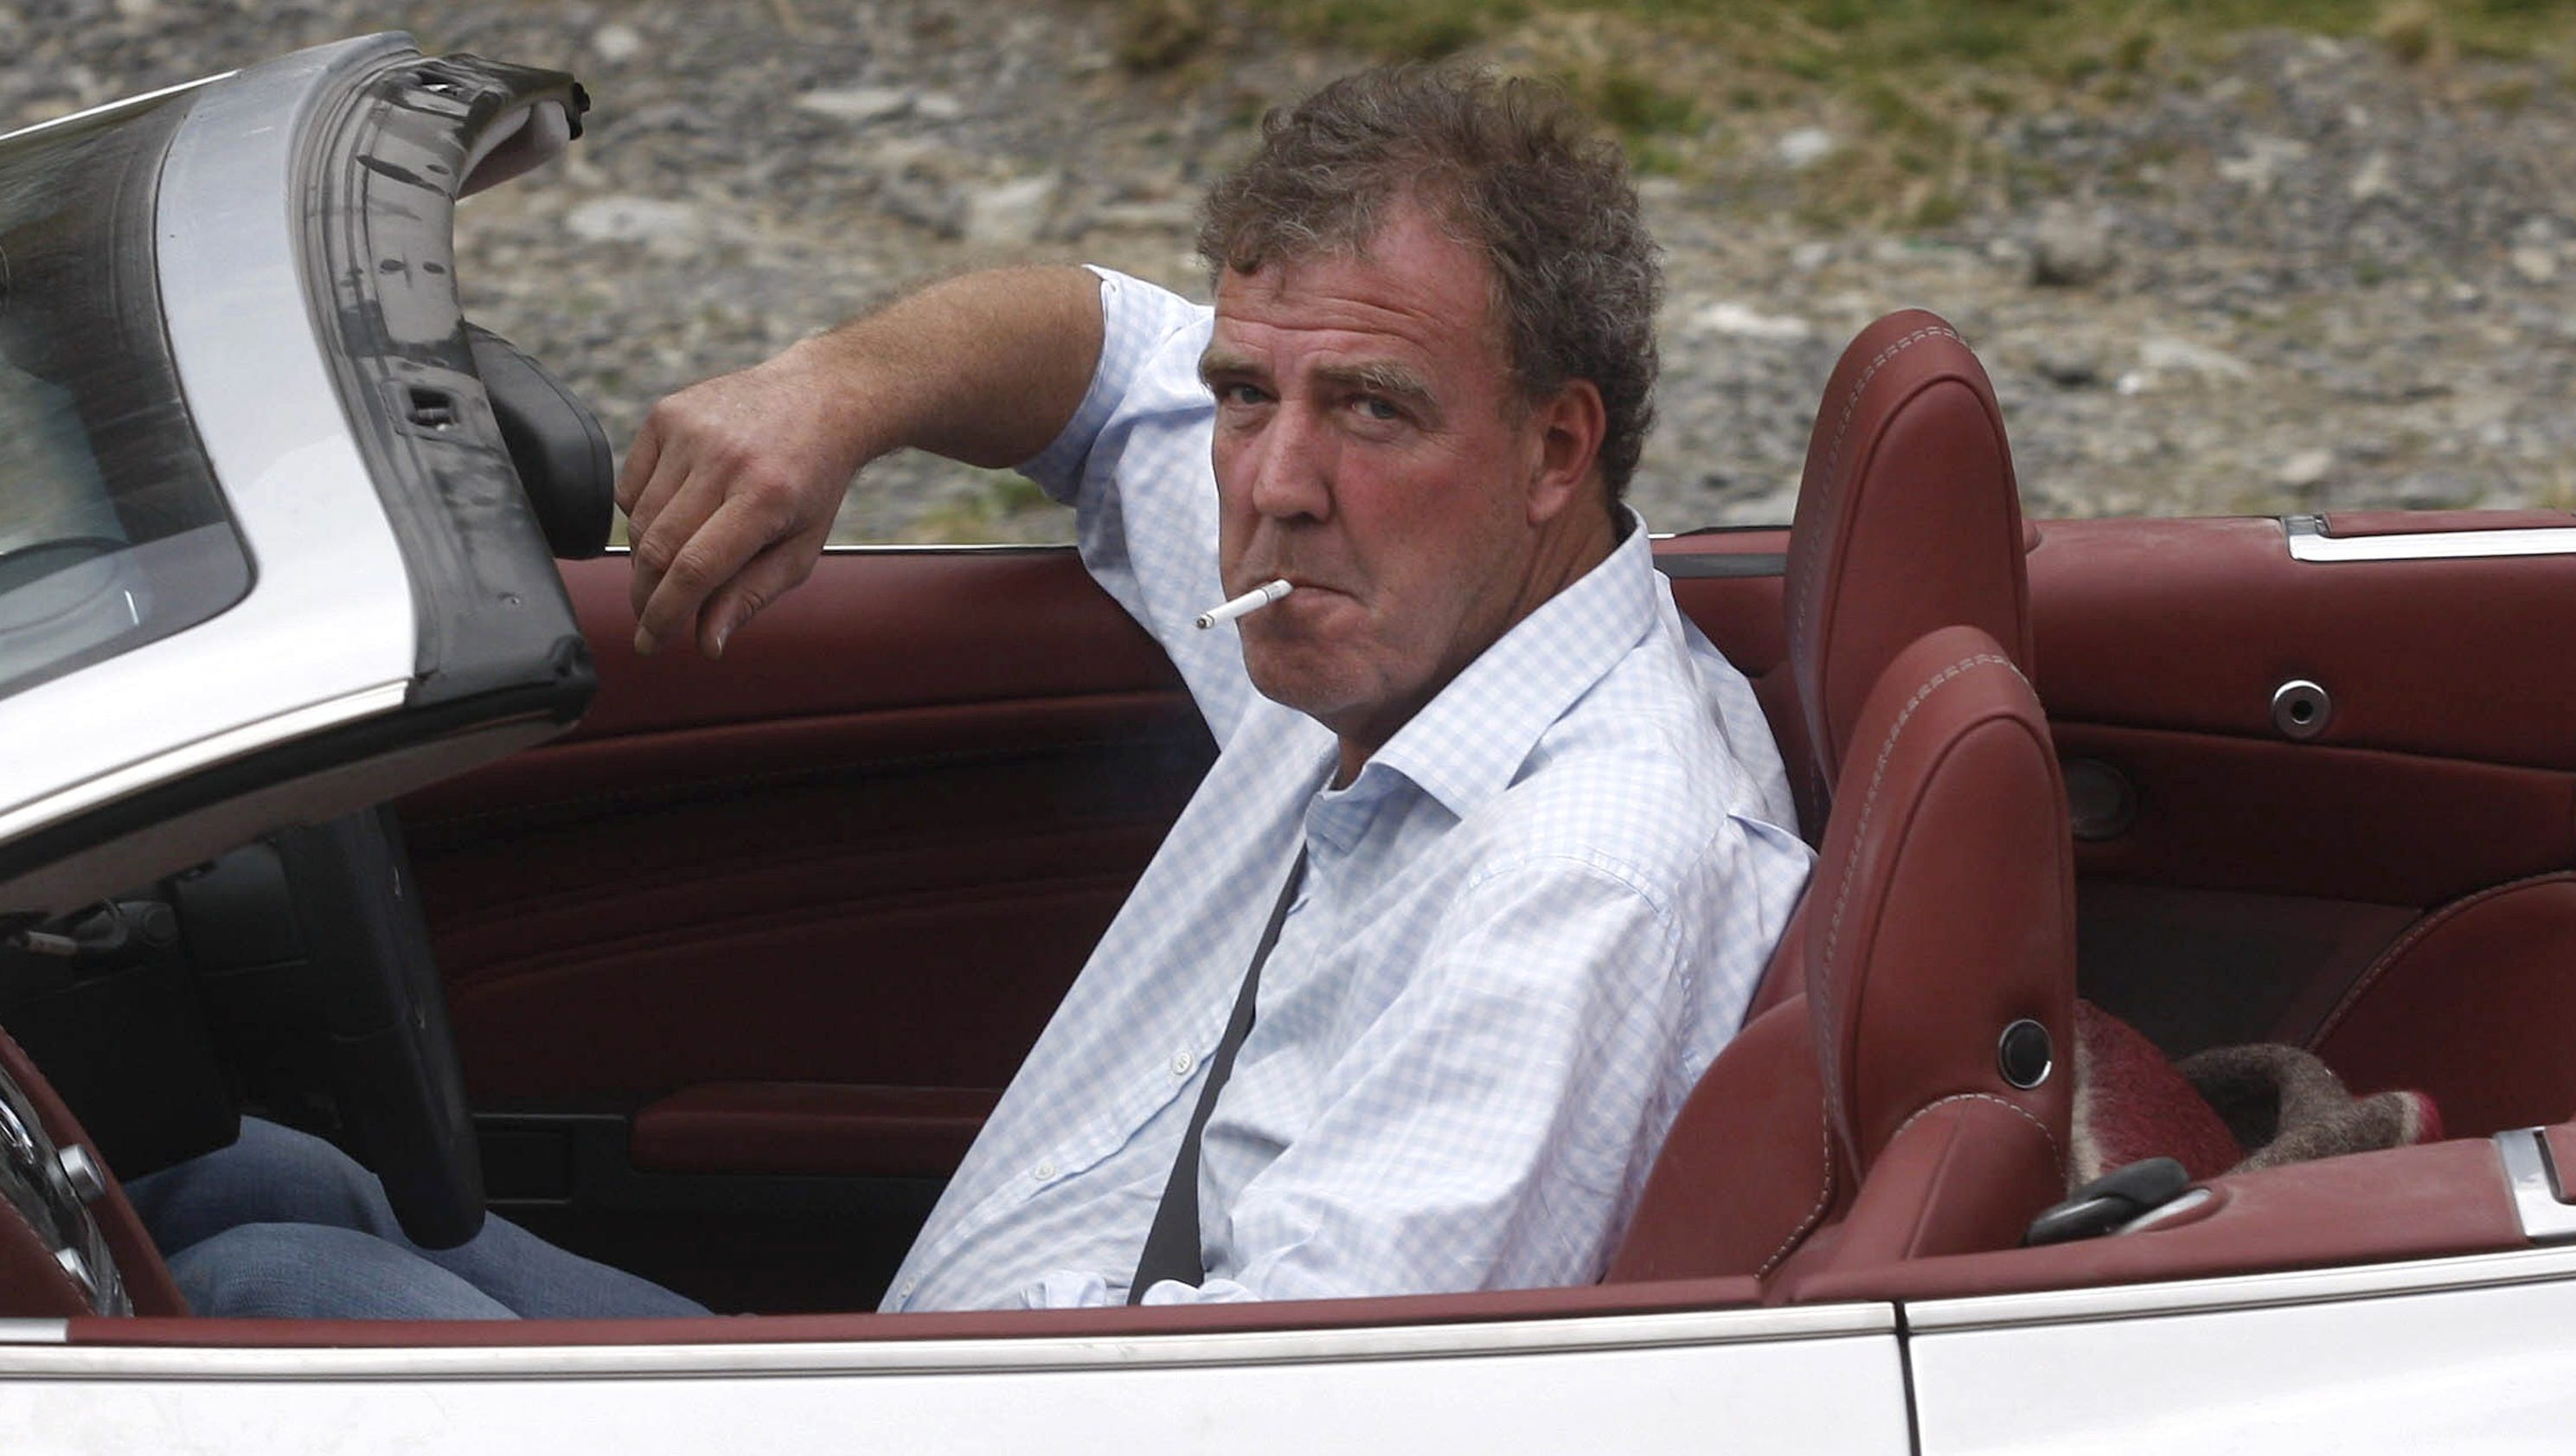 jeremy clarkson suspended from bbc 39 s 39 top gear 39. Black Bedroom Furniture Sets. Home Design Ideas